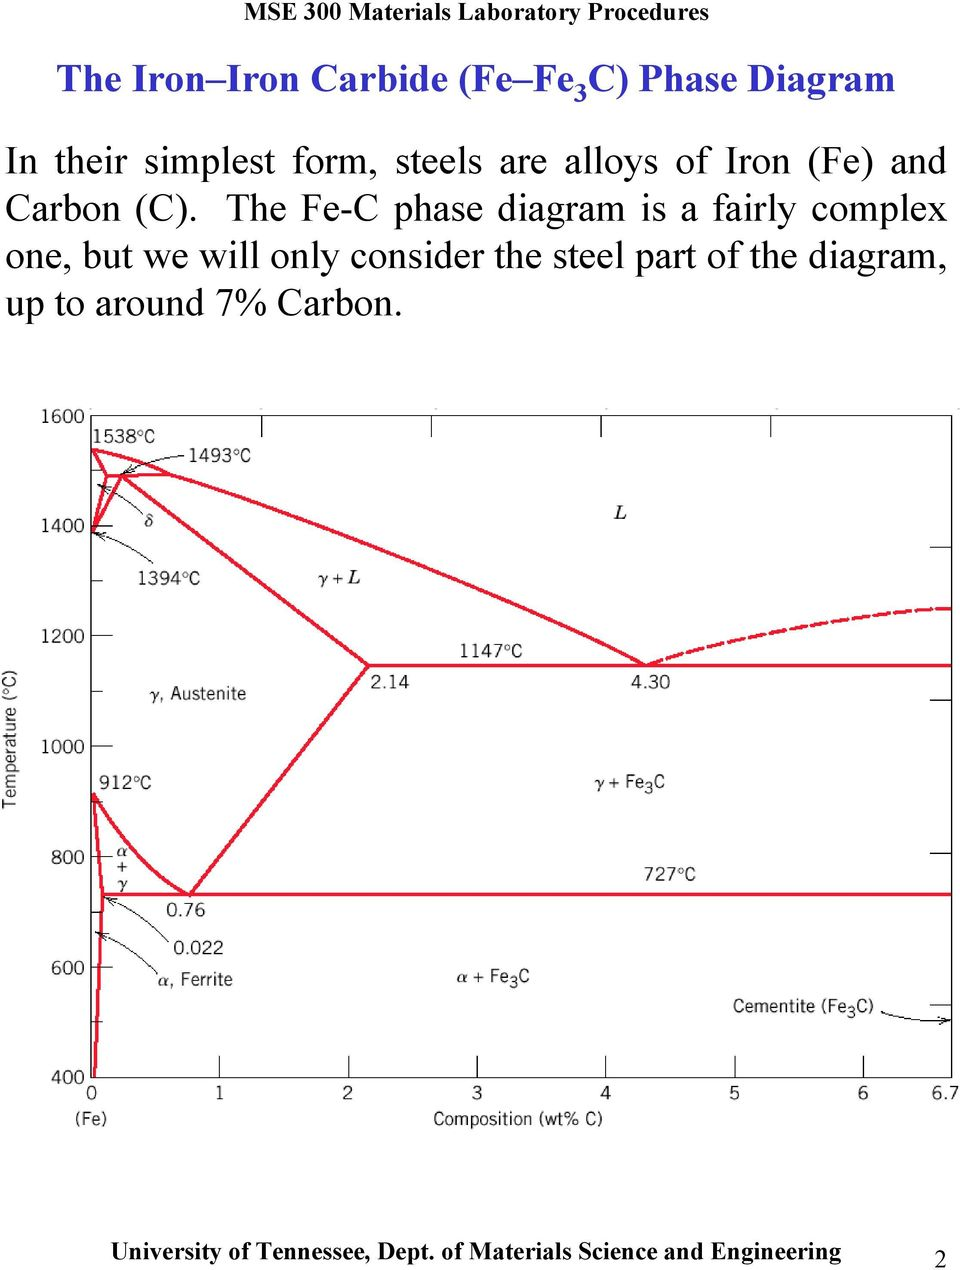 the fe-c phase diagram is a fairly complex one, but we will only